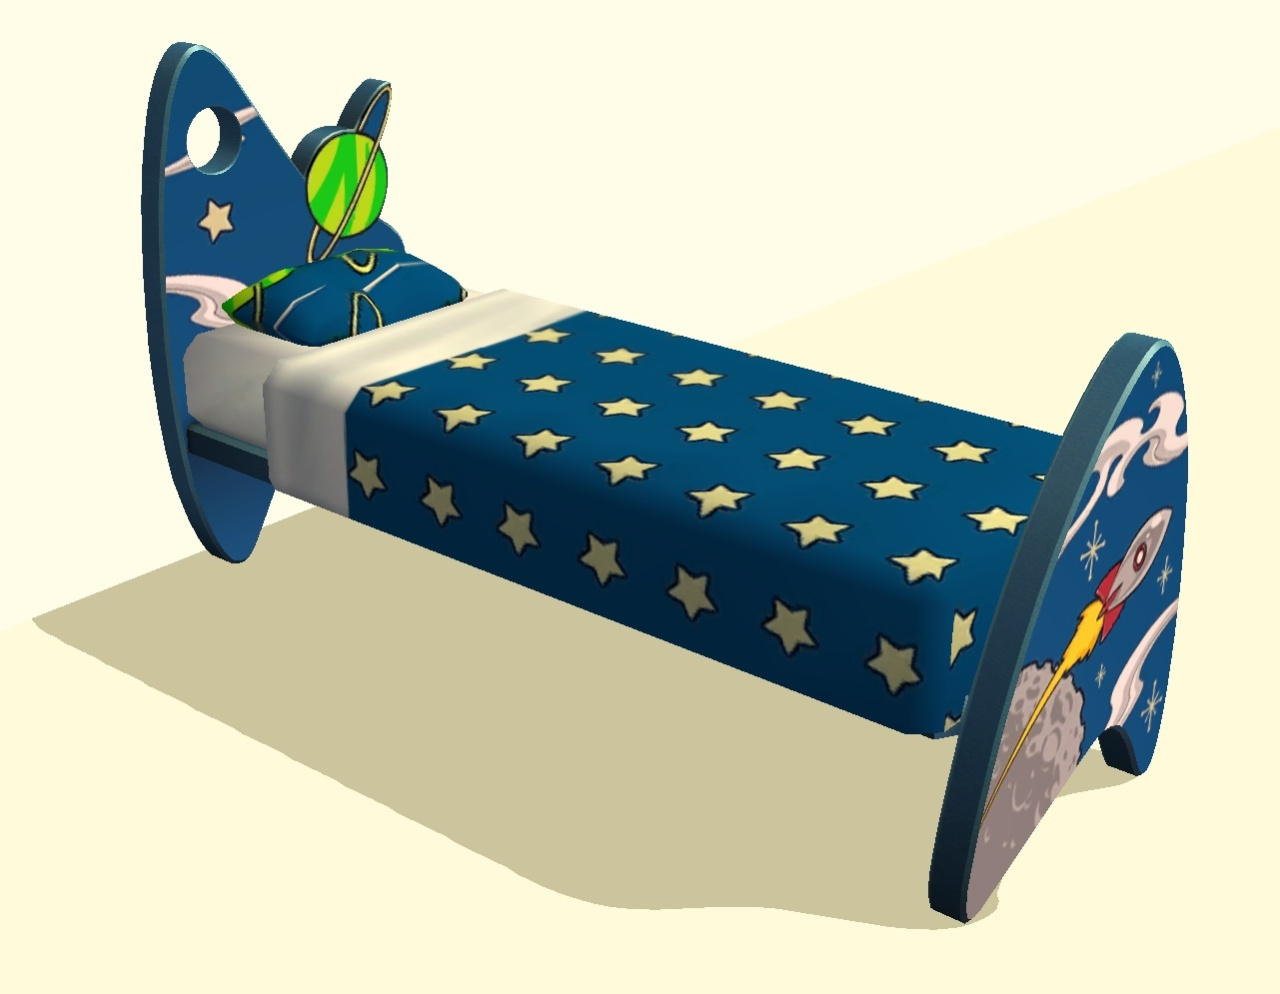 3 Twin Beds In The Space Of 1 Mod The Sims Matching Space Bedding For Children 39s Space